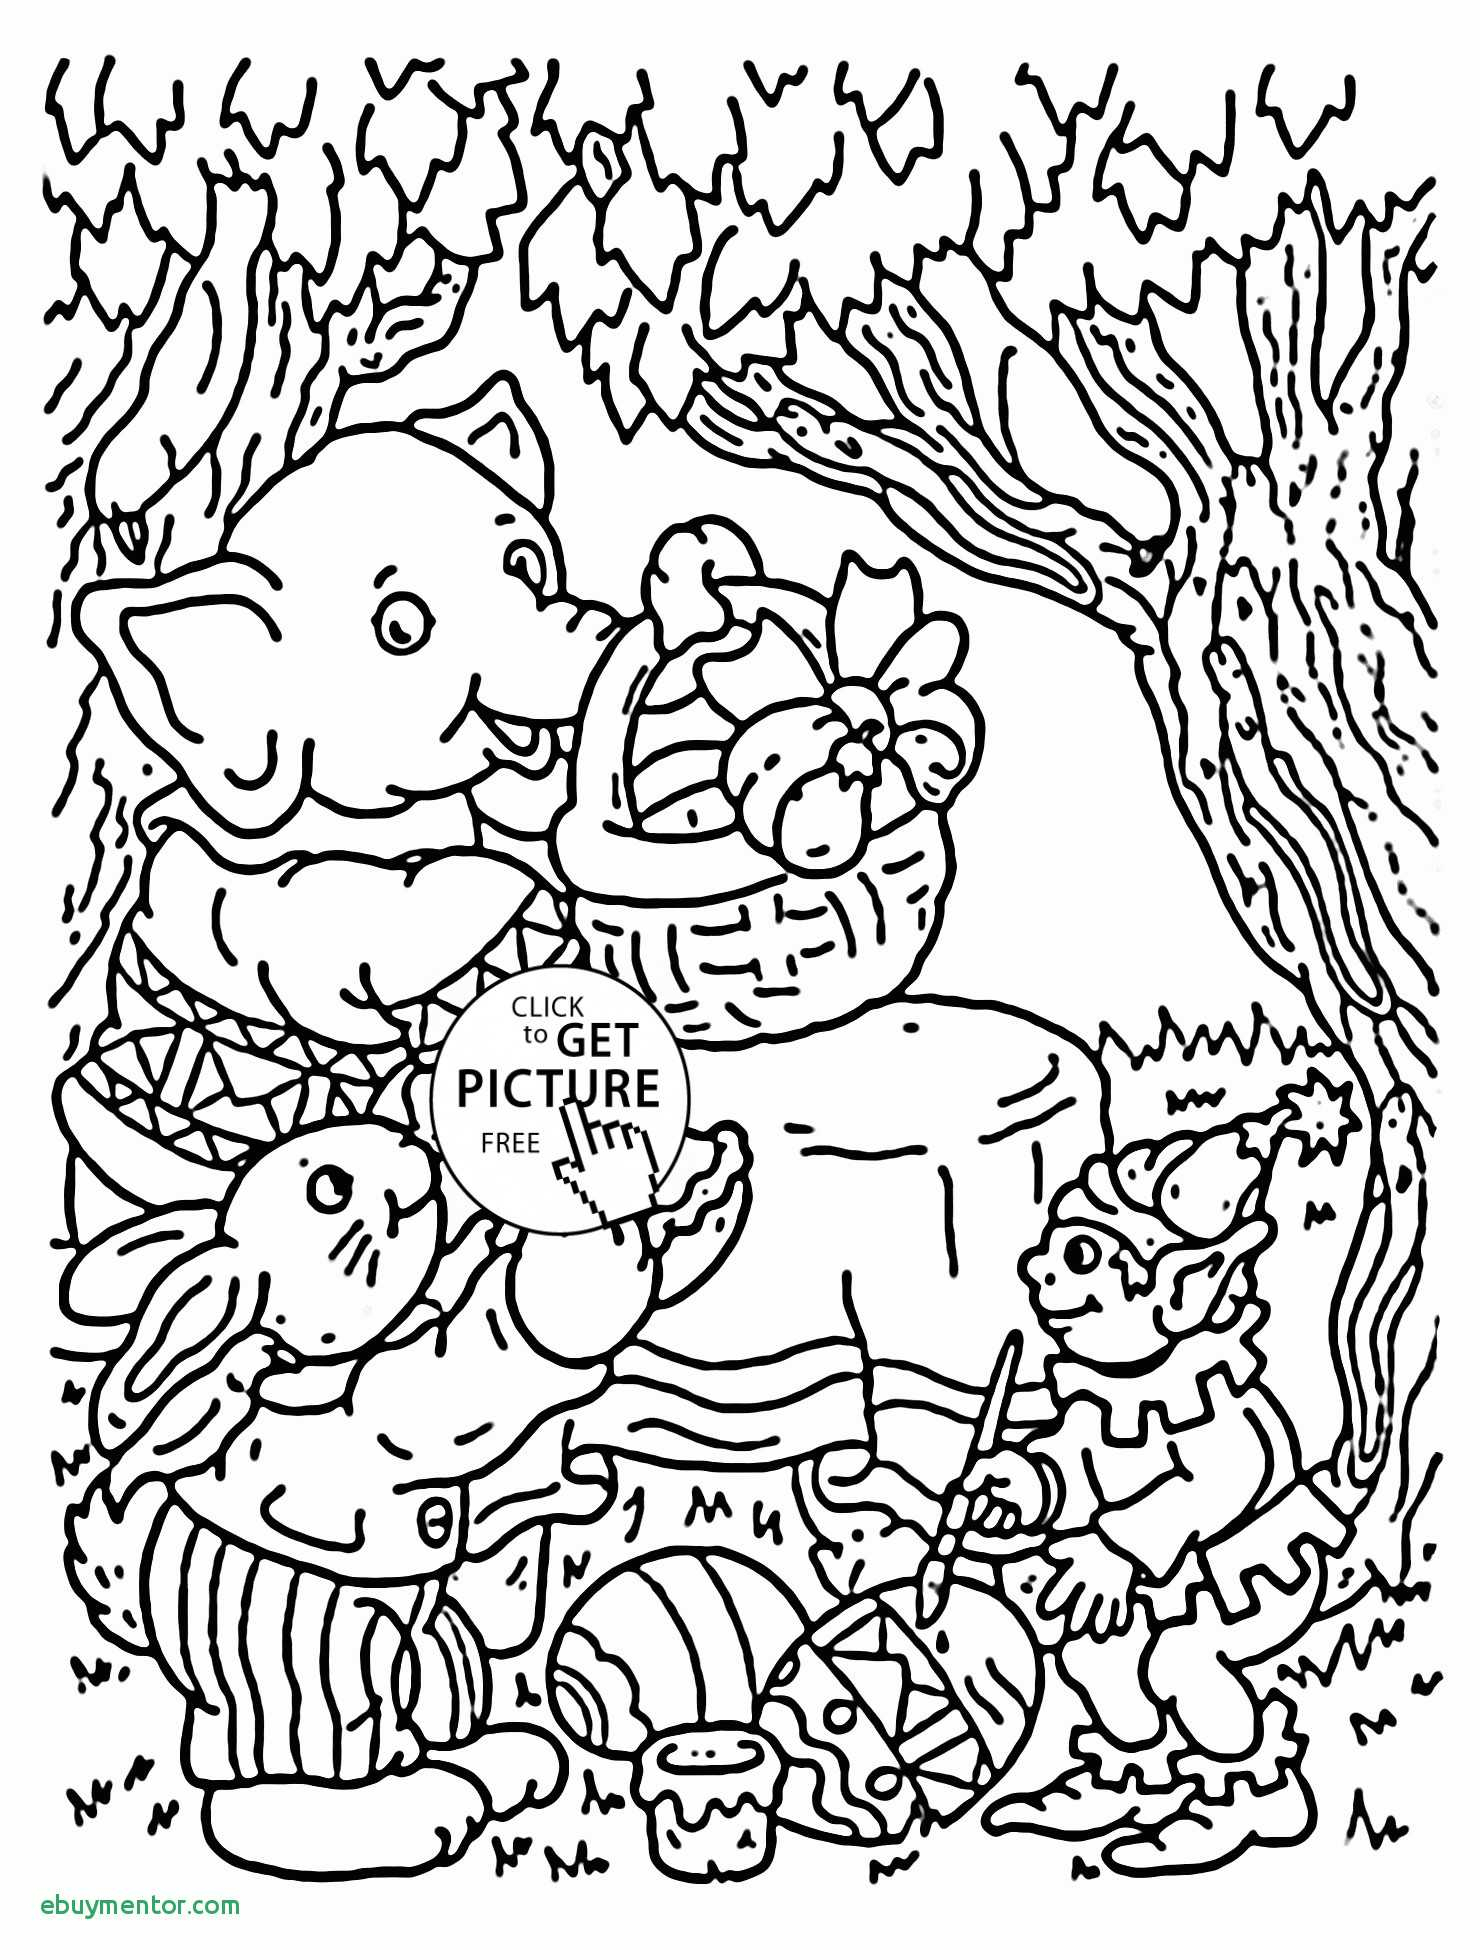 daniel coloring page daniel in the lion den coloring pages coloring home page coloring daniel